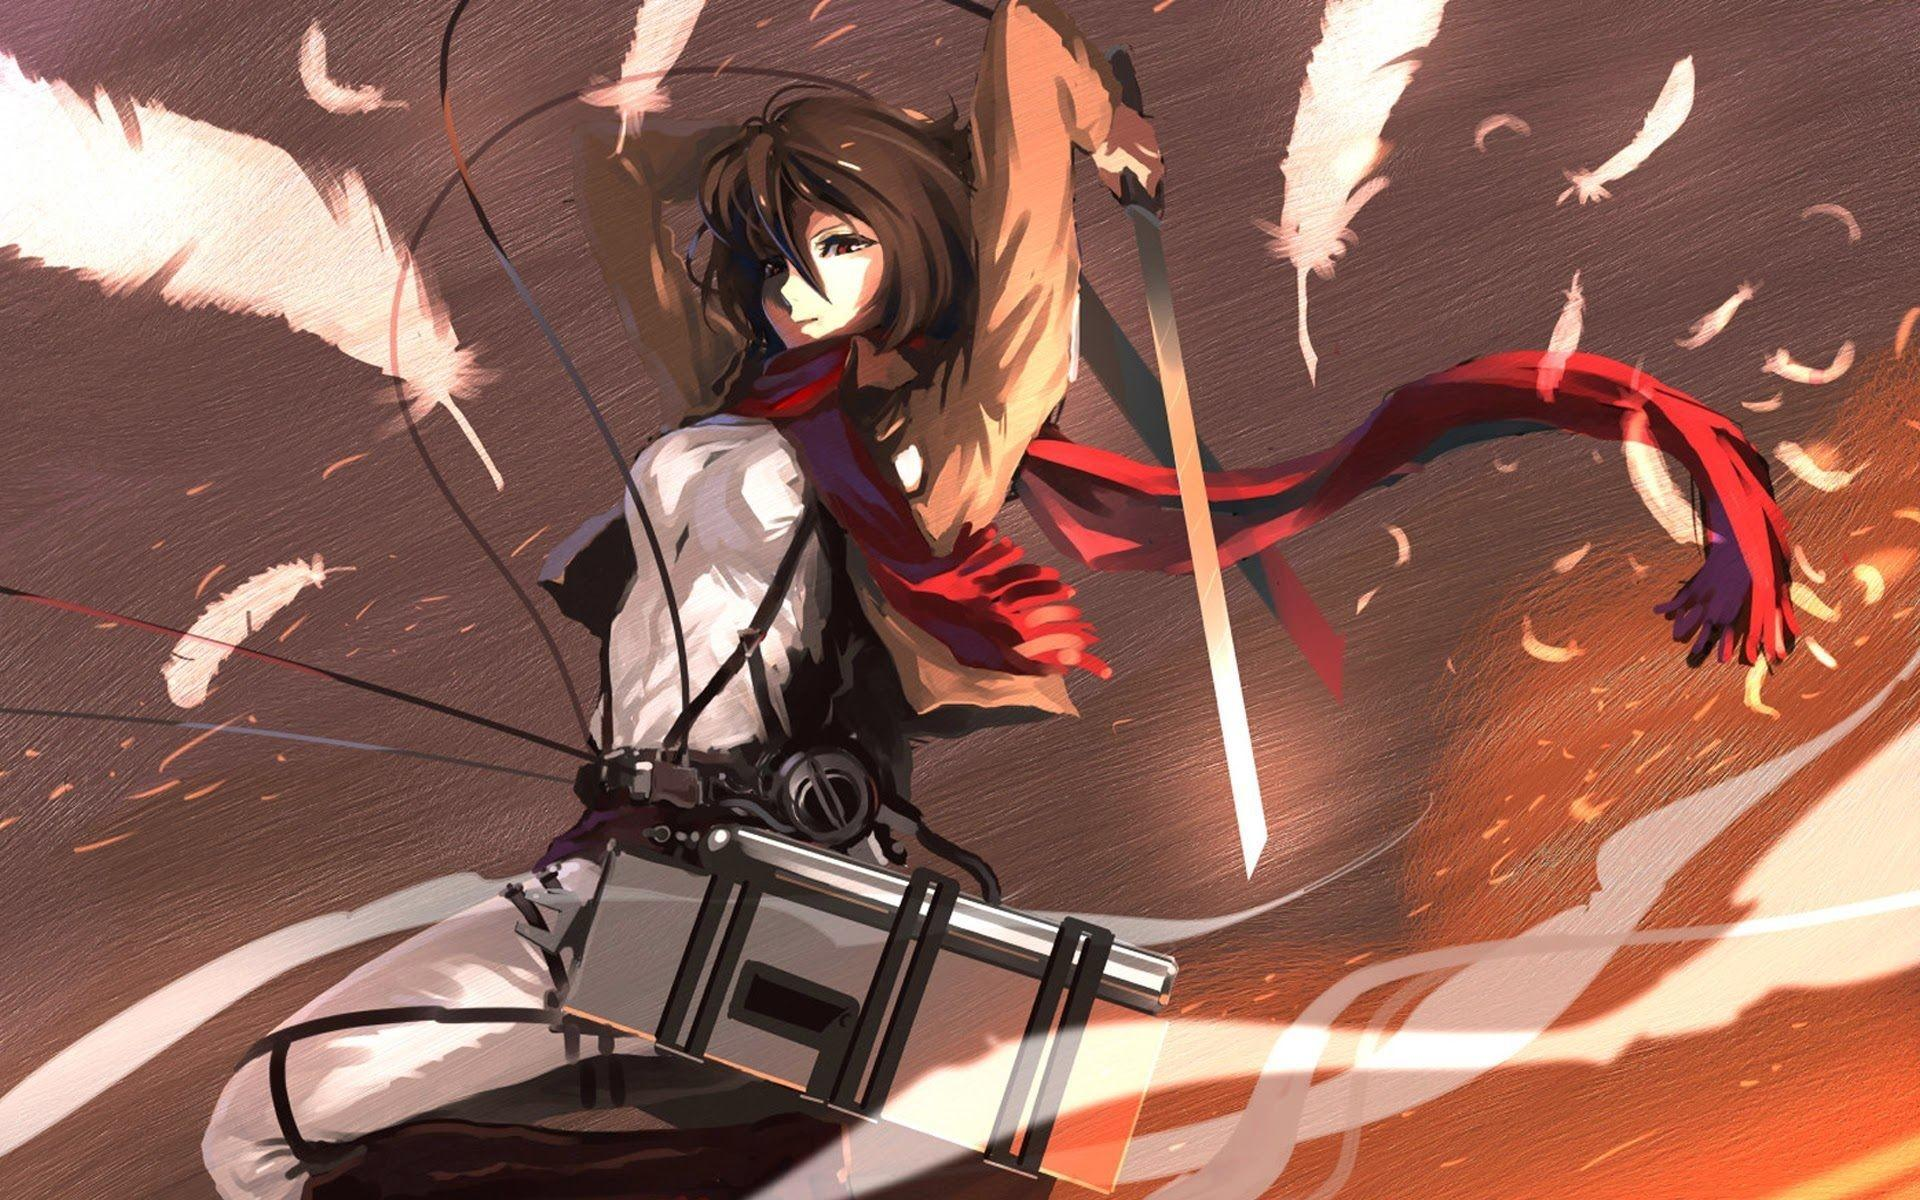 But setting any old live photo isn't going to give you great results: Attack On Titans Anime Wallpapers - Wallpaper Cave